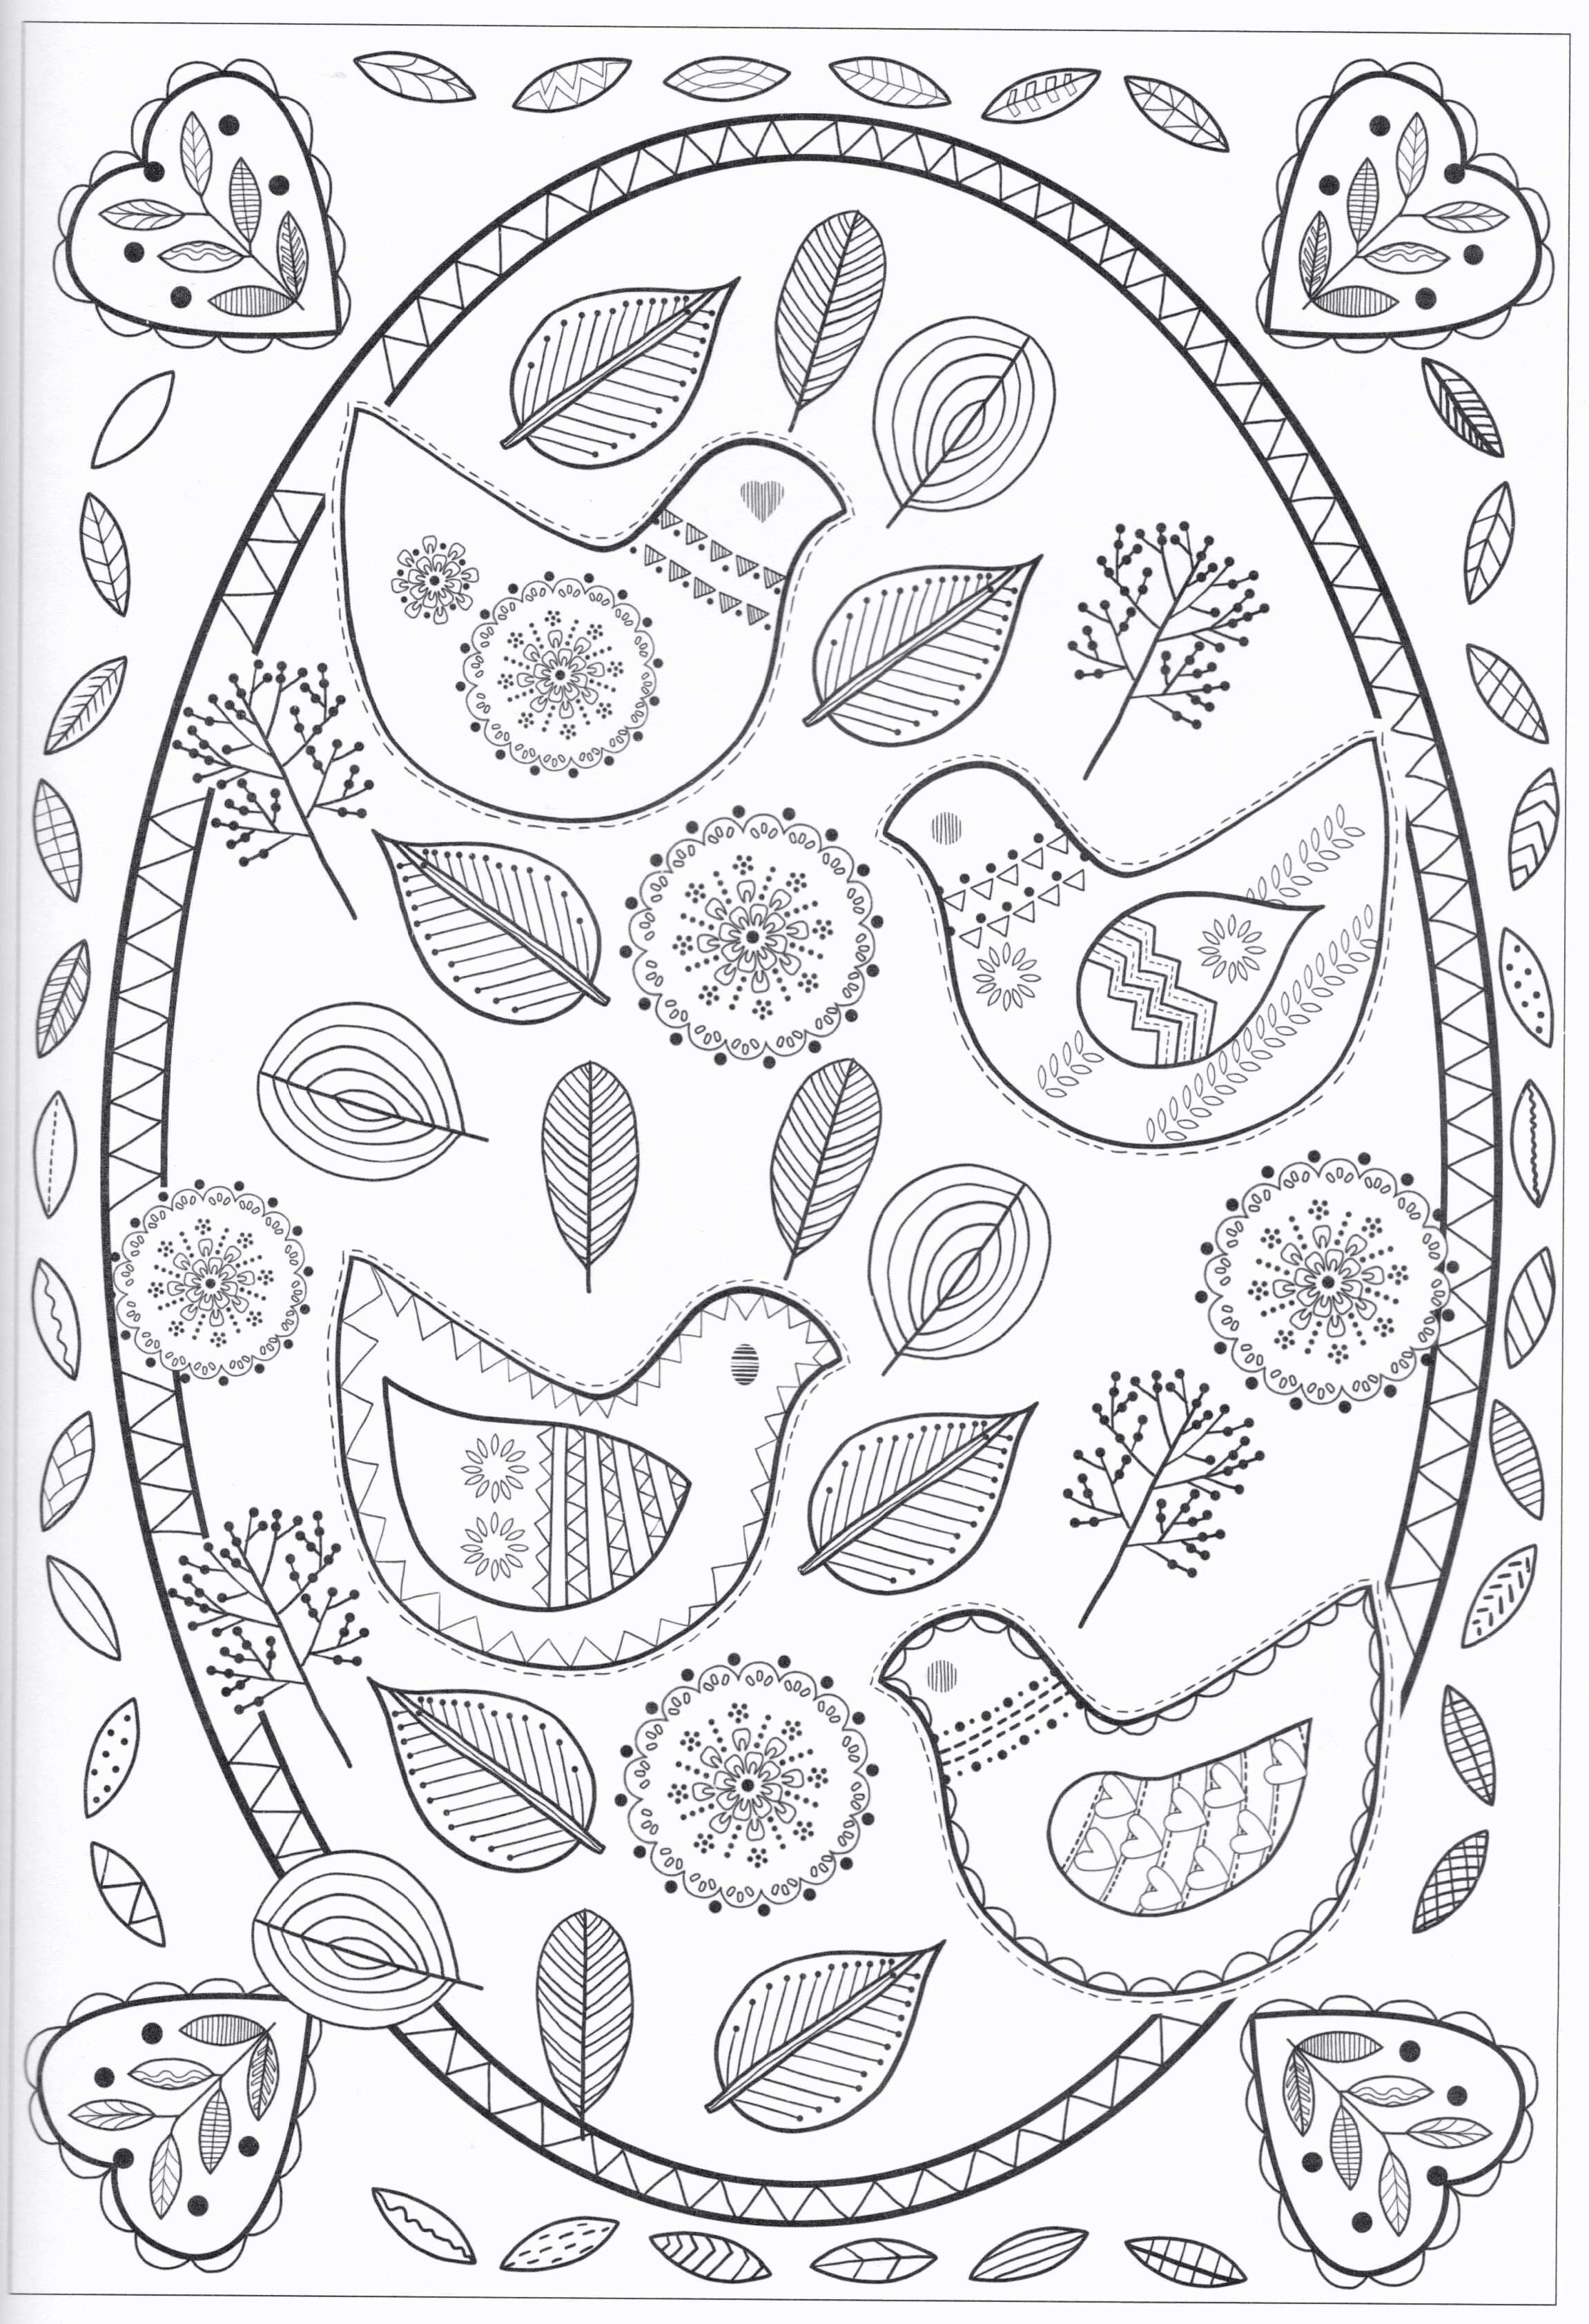 Beatitudes Coloring Pages Beatitudes Coloring Pages Elegant Free ...